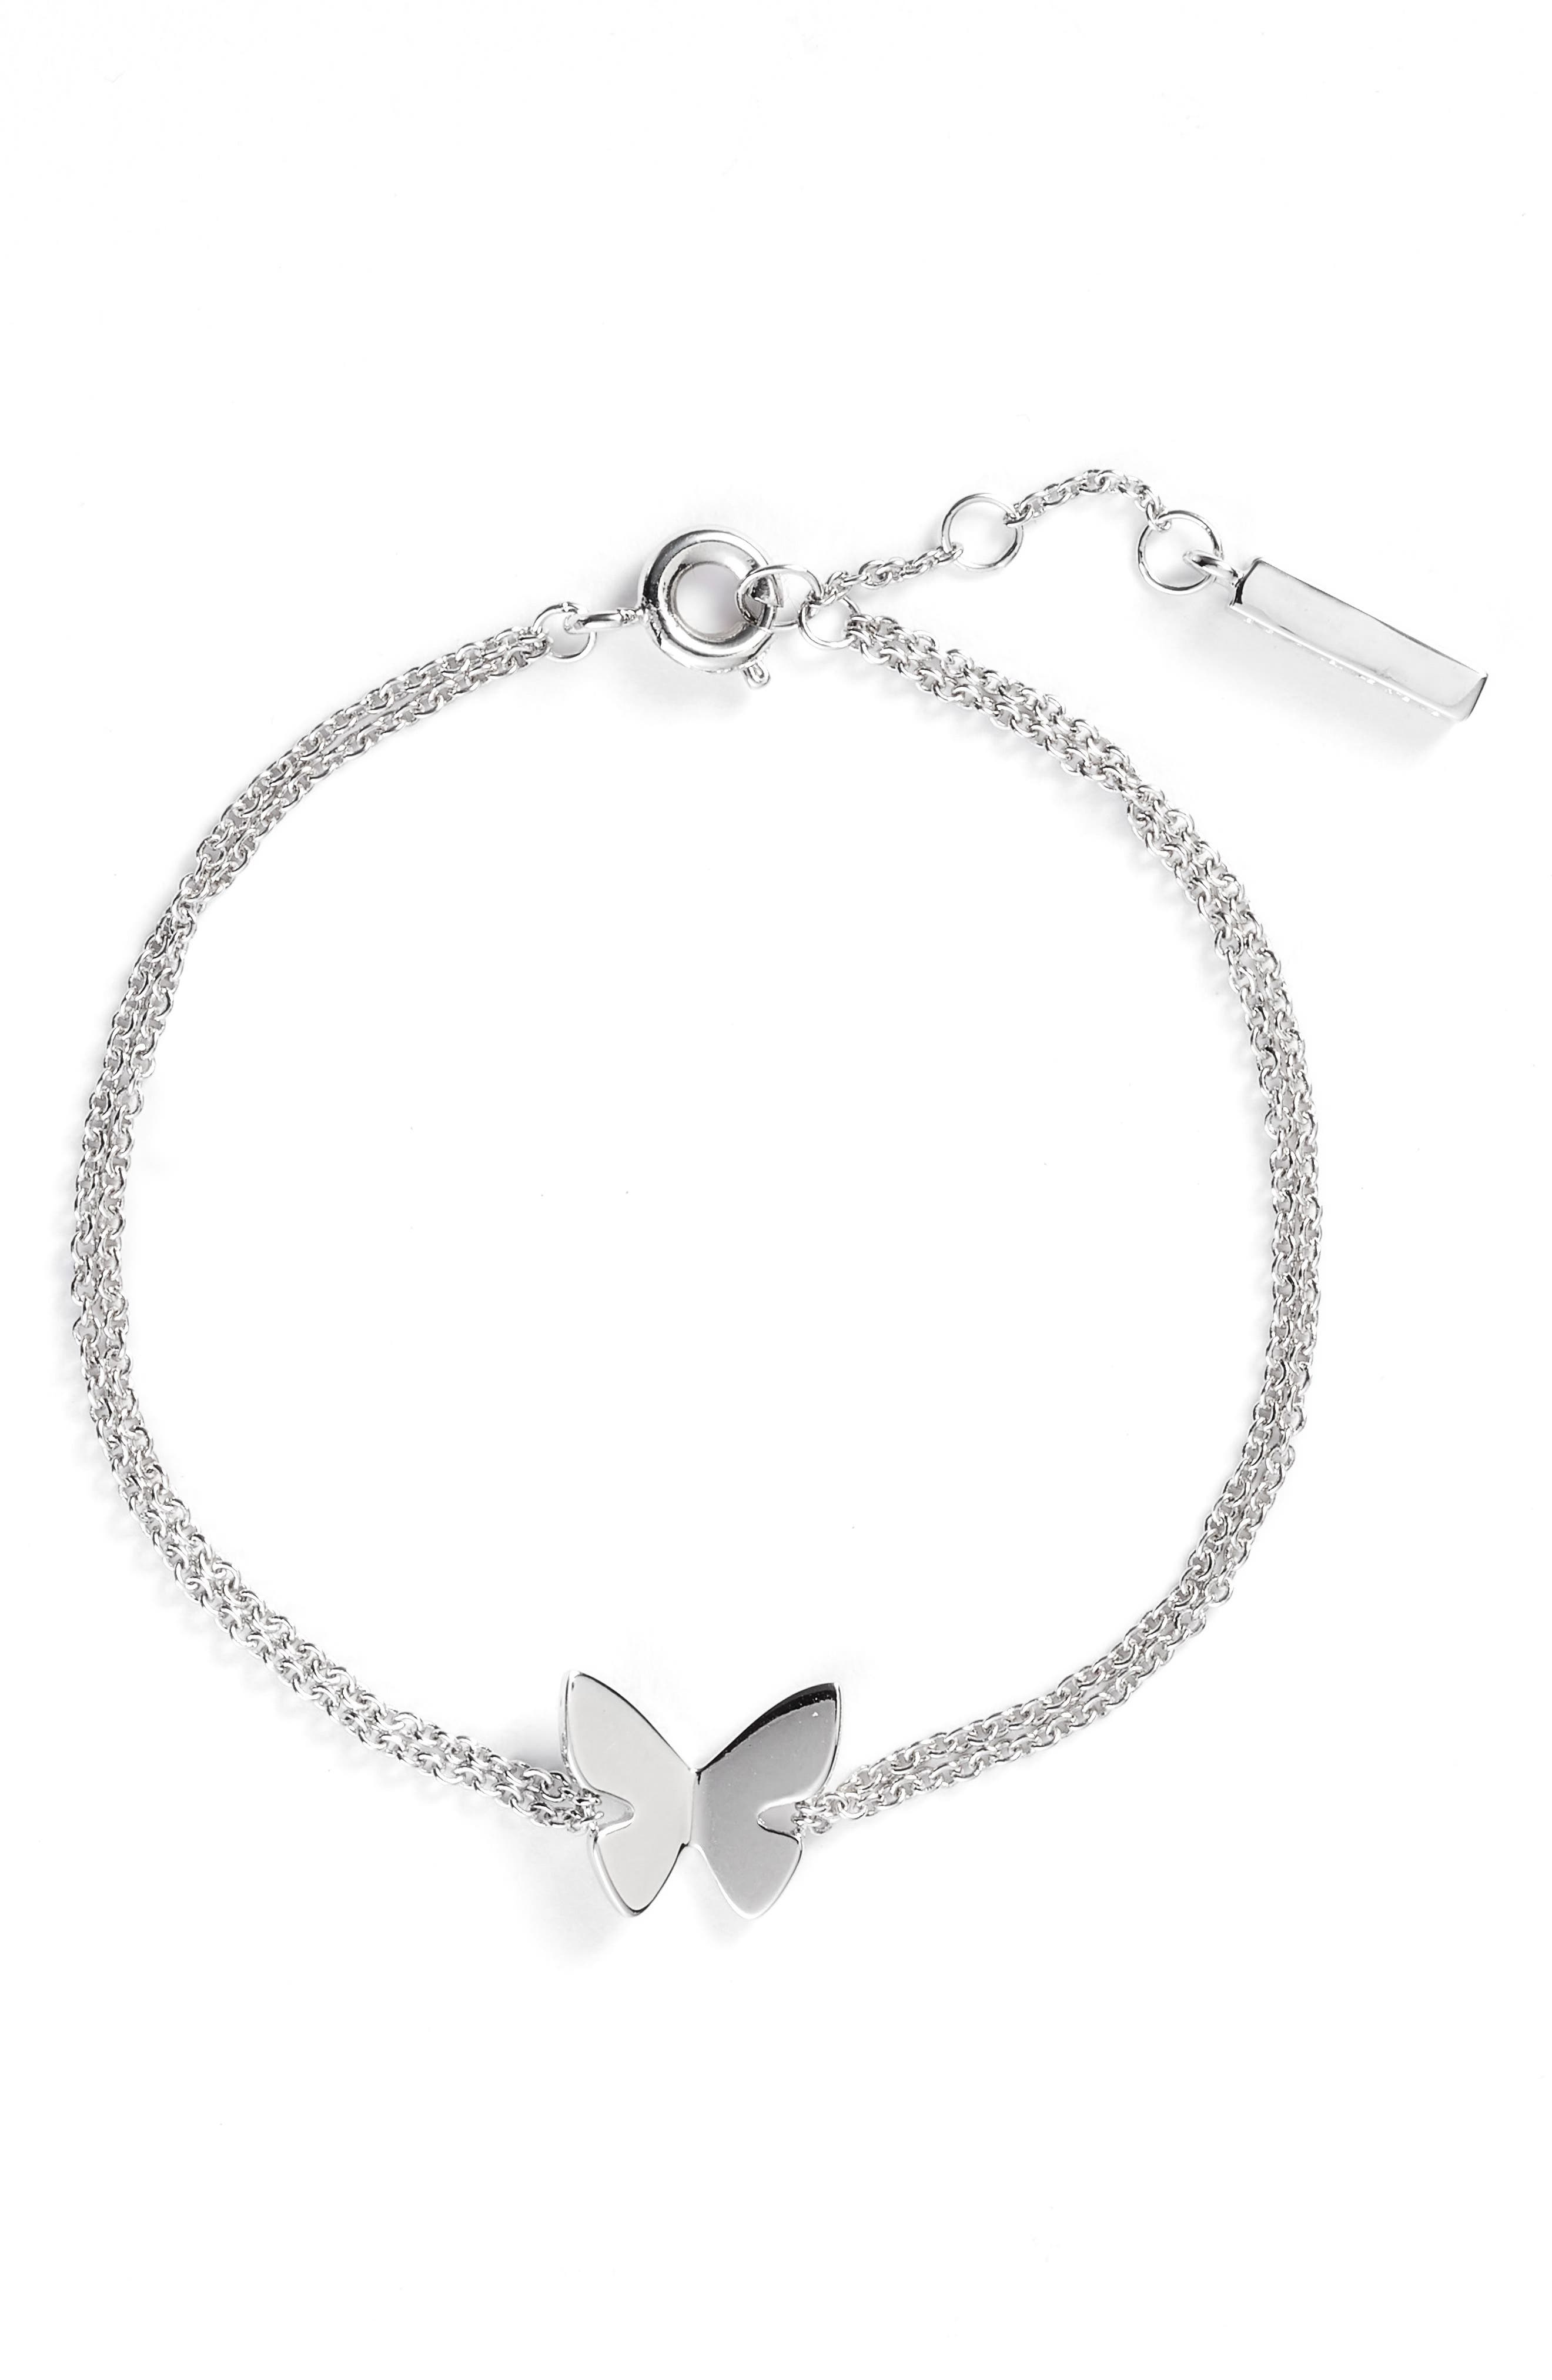 Social Butterfly Chain Bracelet,                             Main thumbnail 1, color,                             SILVER